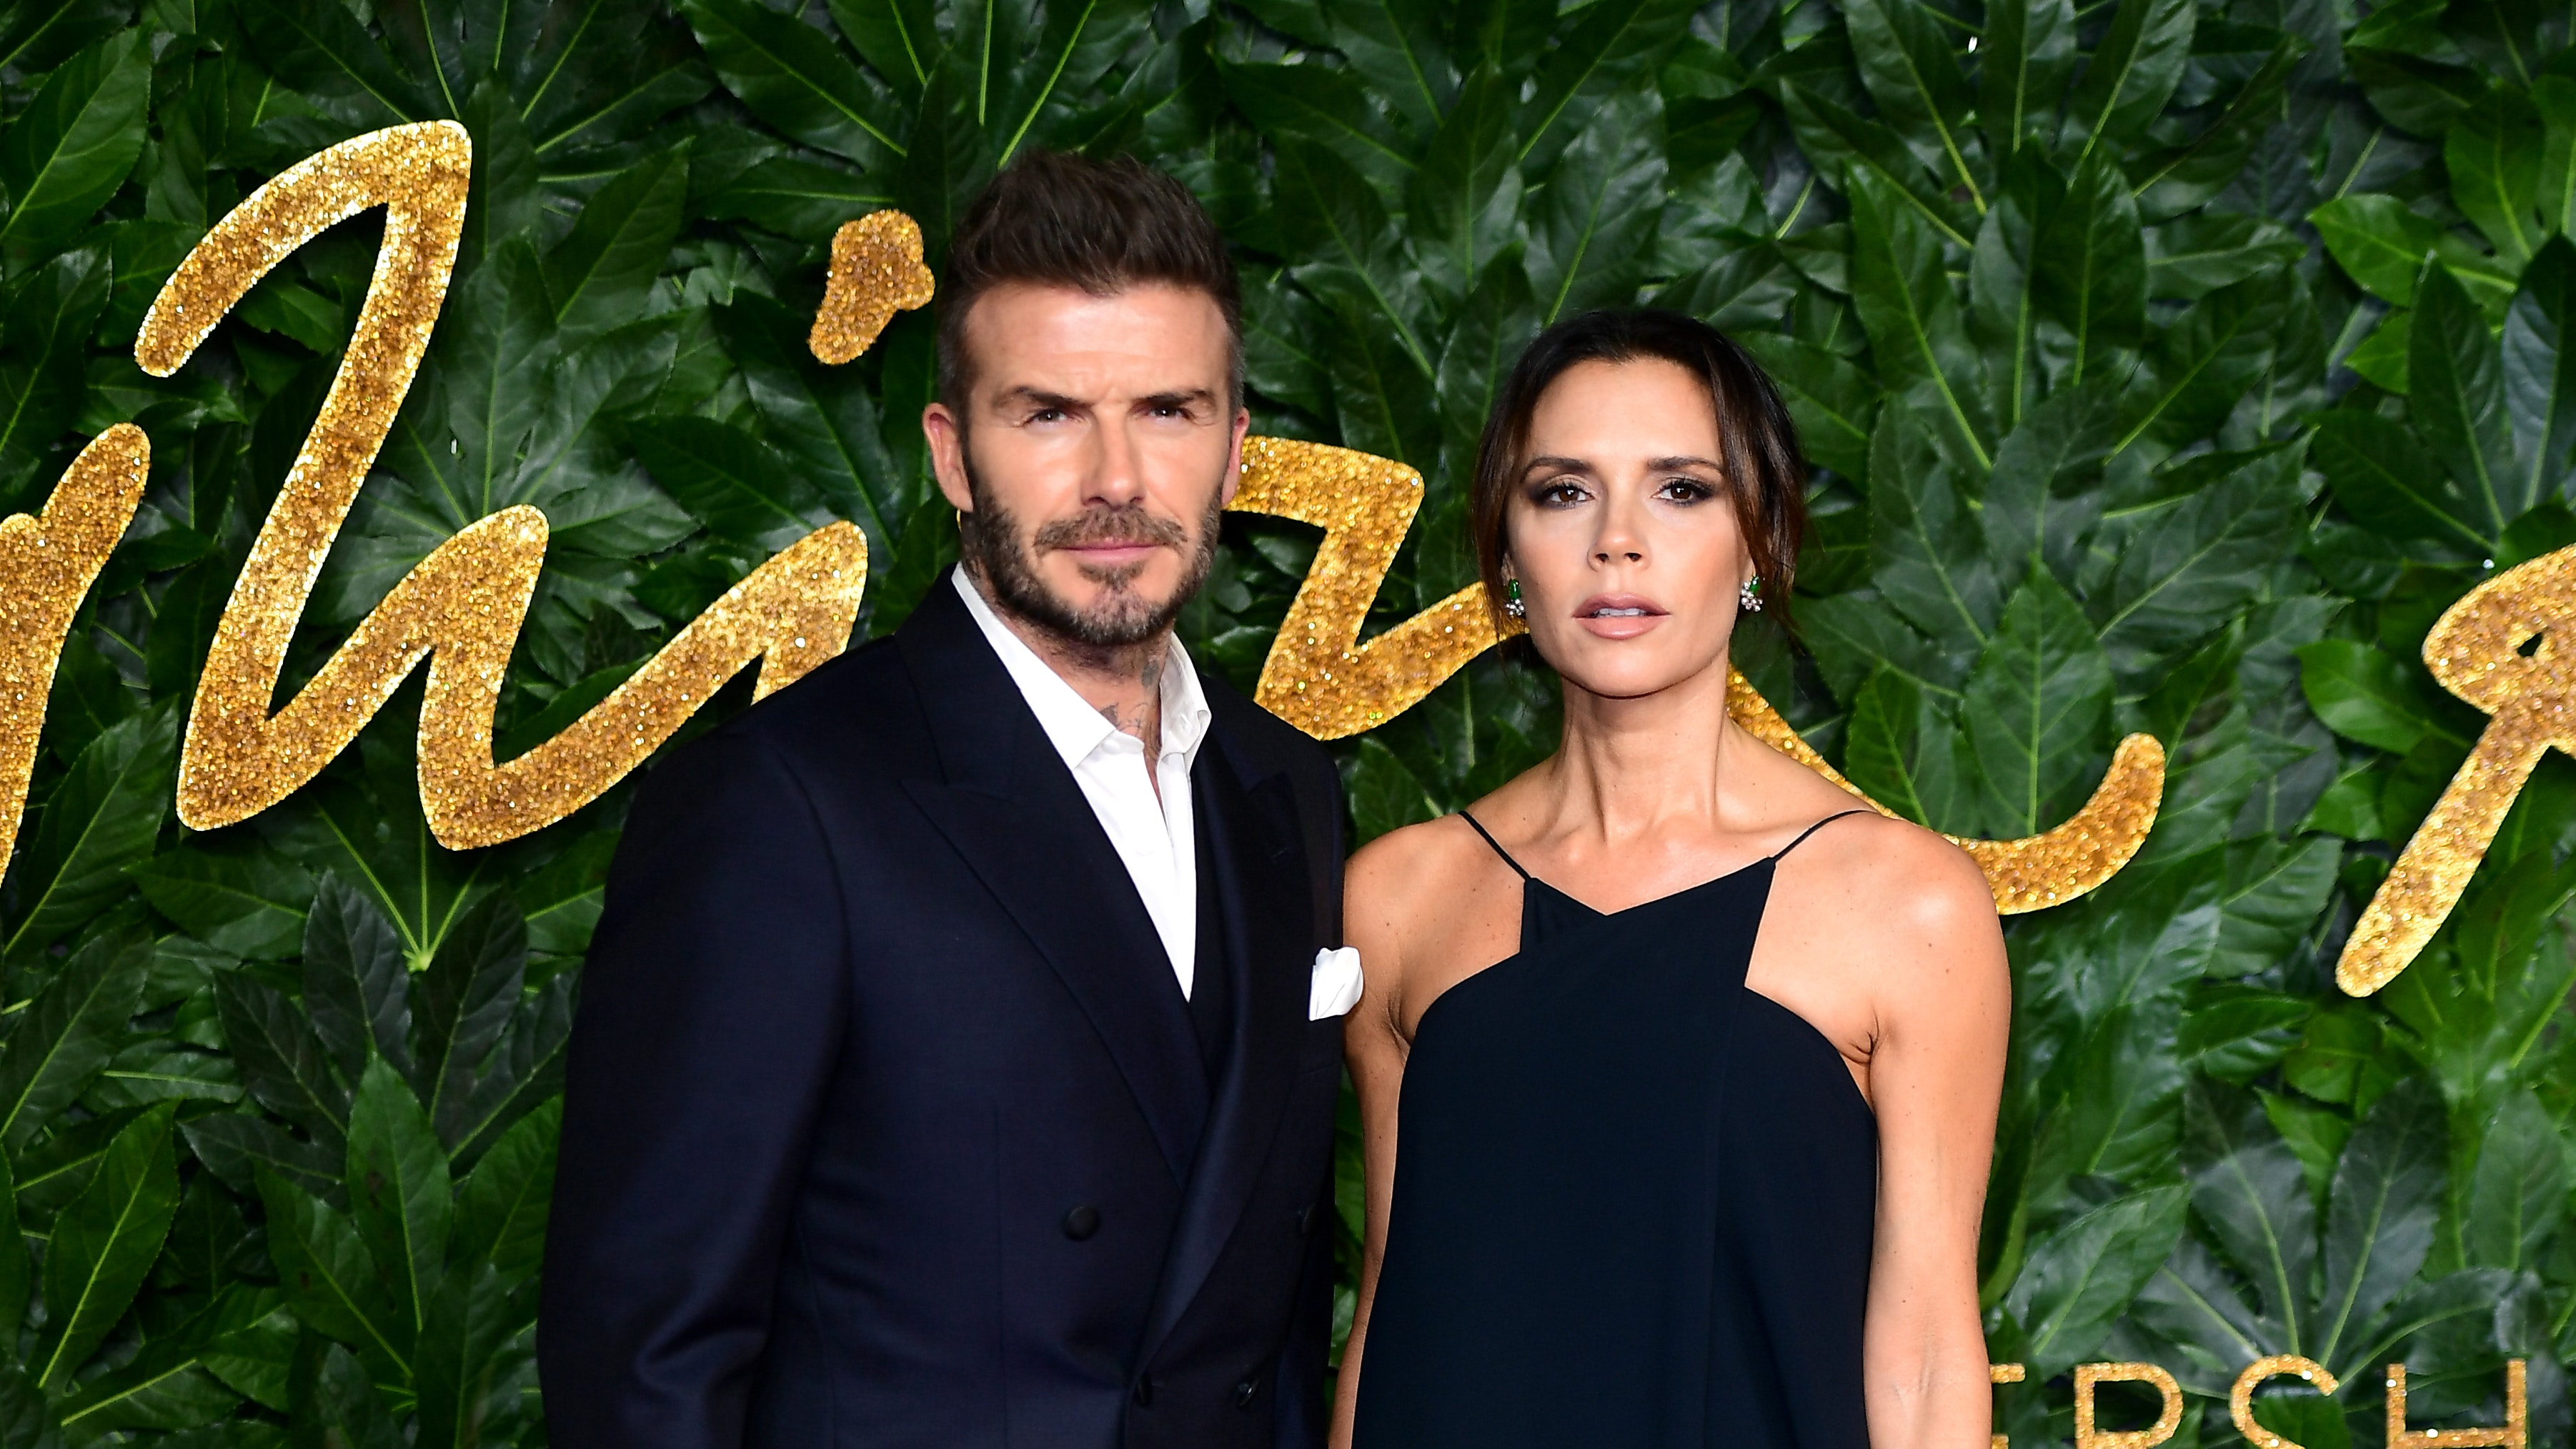 Victoria Beckham pictures: Inside the Beckhams' lavish New Year's Eve party